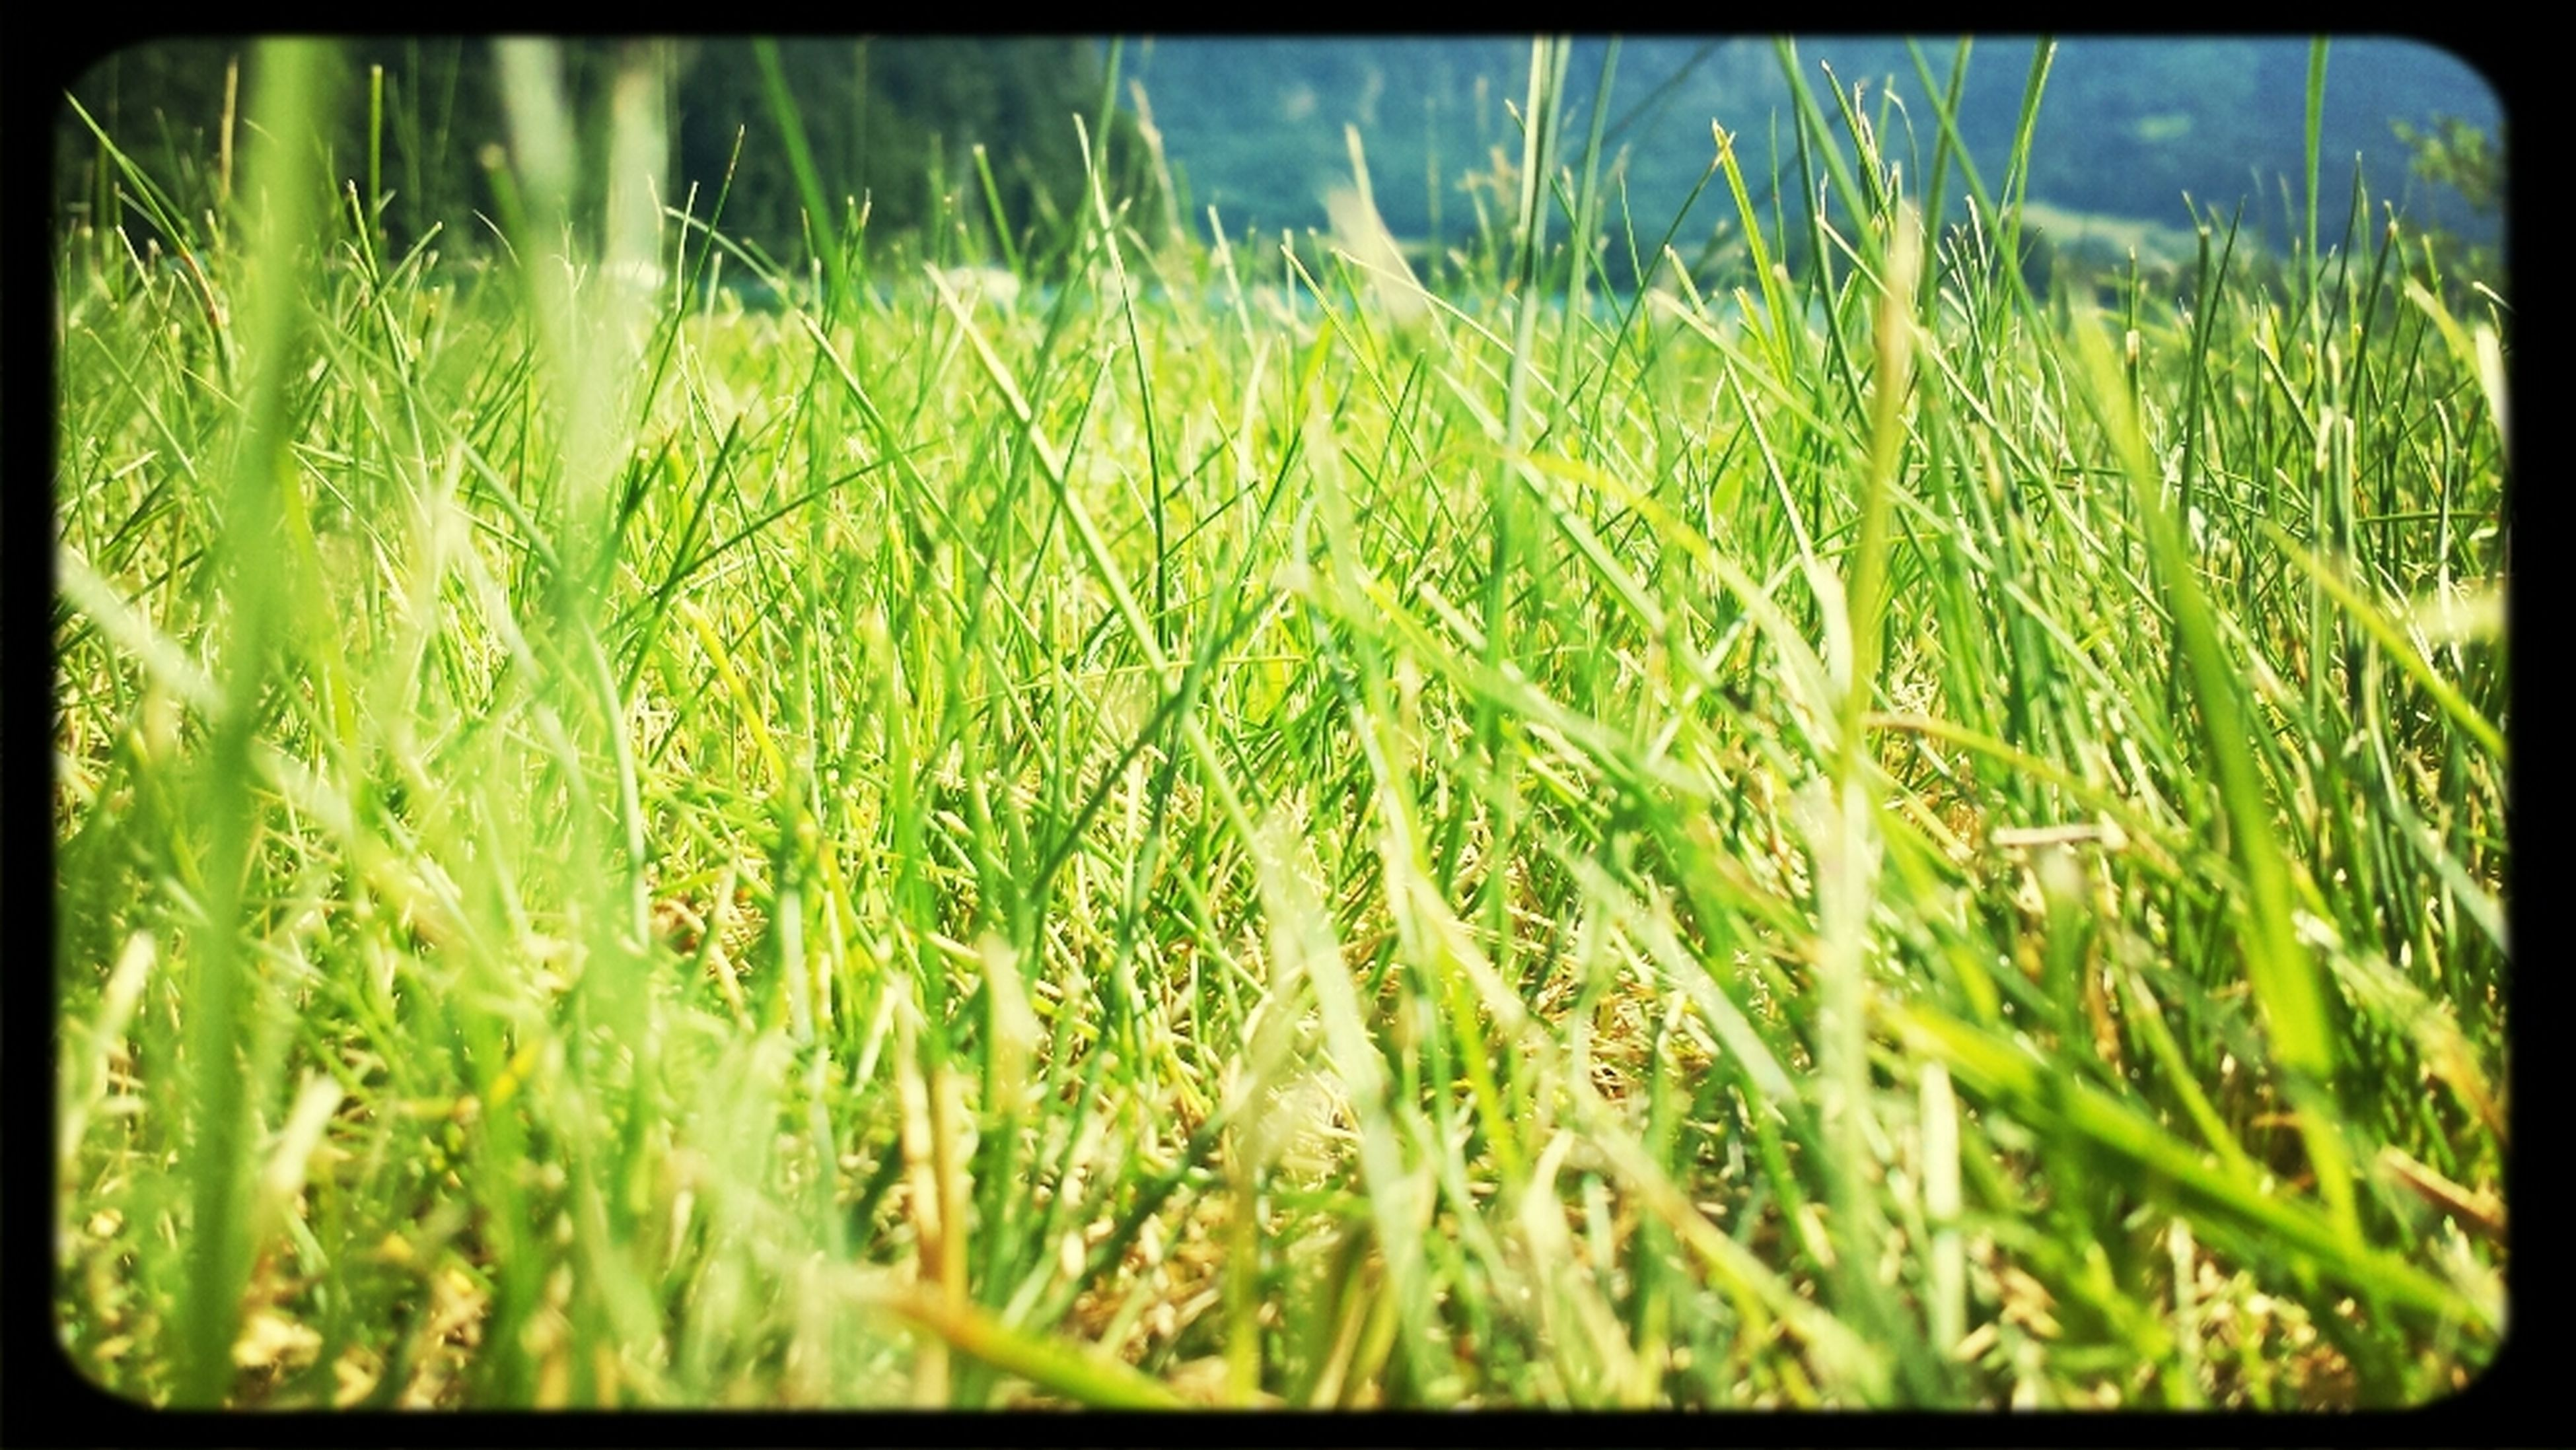 transfer print, auto post production filter, growth, grass, field, plant, nature, green color, beauty in nature, close-up, tranquility, selective focus, freshness, growing, day, outdoors, blade of grass, no people, green, focus on foreground